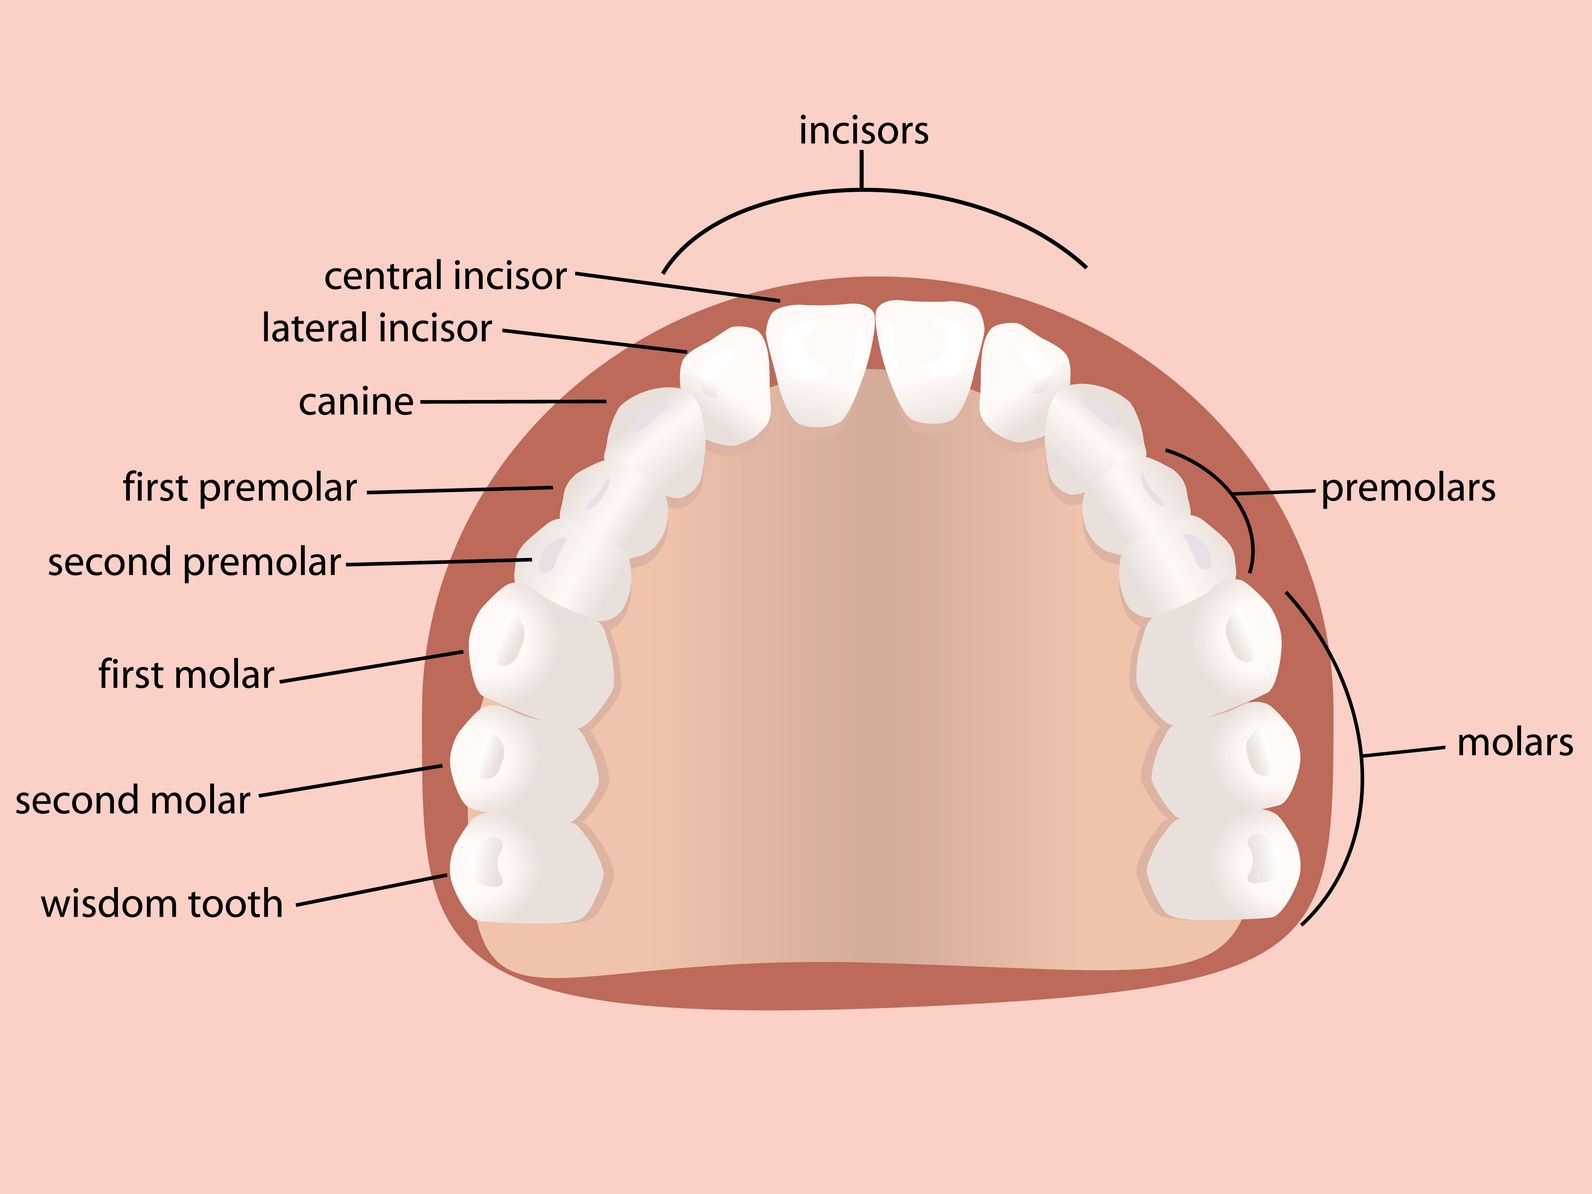 small resolution of by the age of 18 the average adult has 32 teeth 16 teeth on top and 16 teeth on bottom each tooth in the mouth has a specific name and function